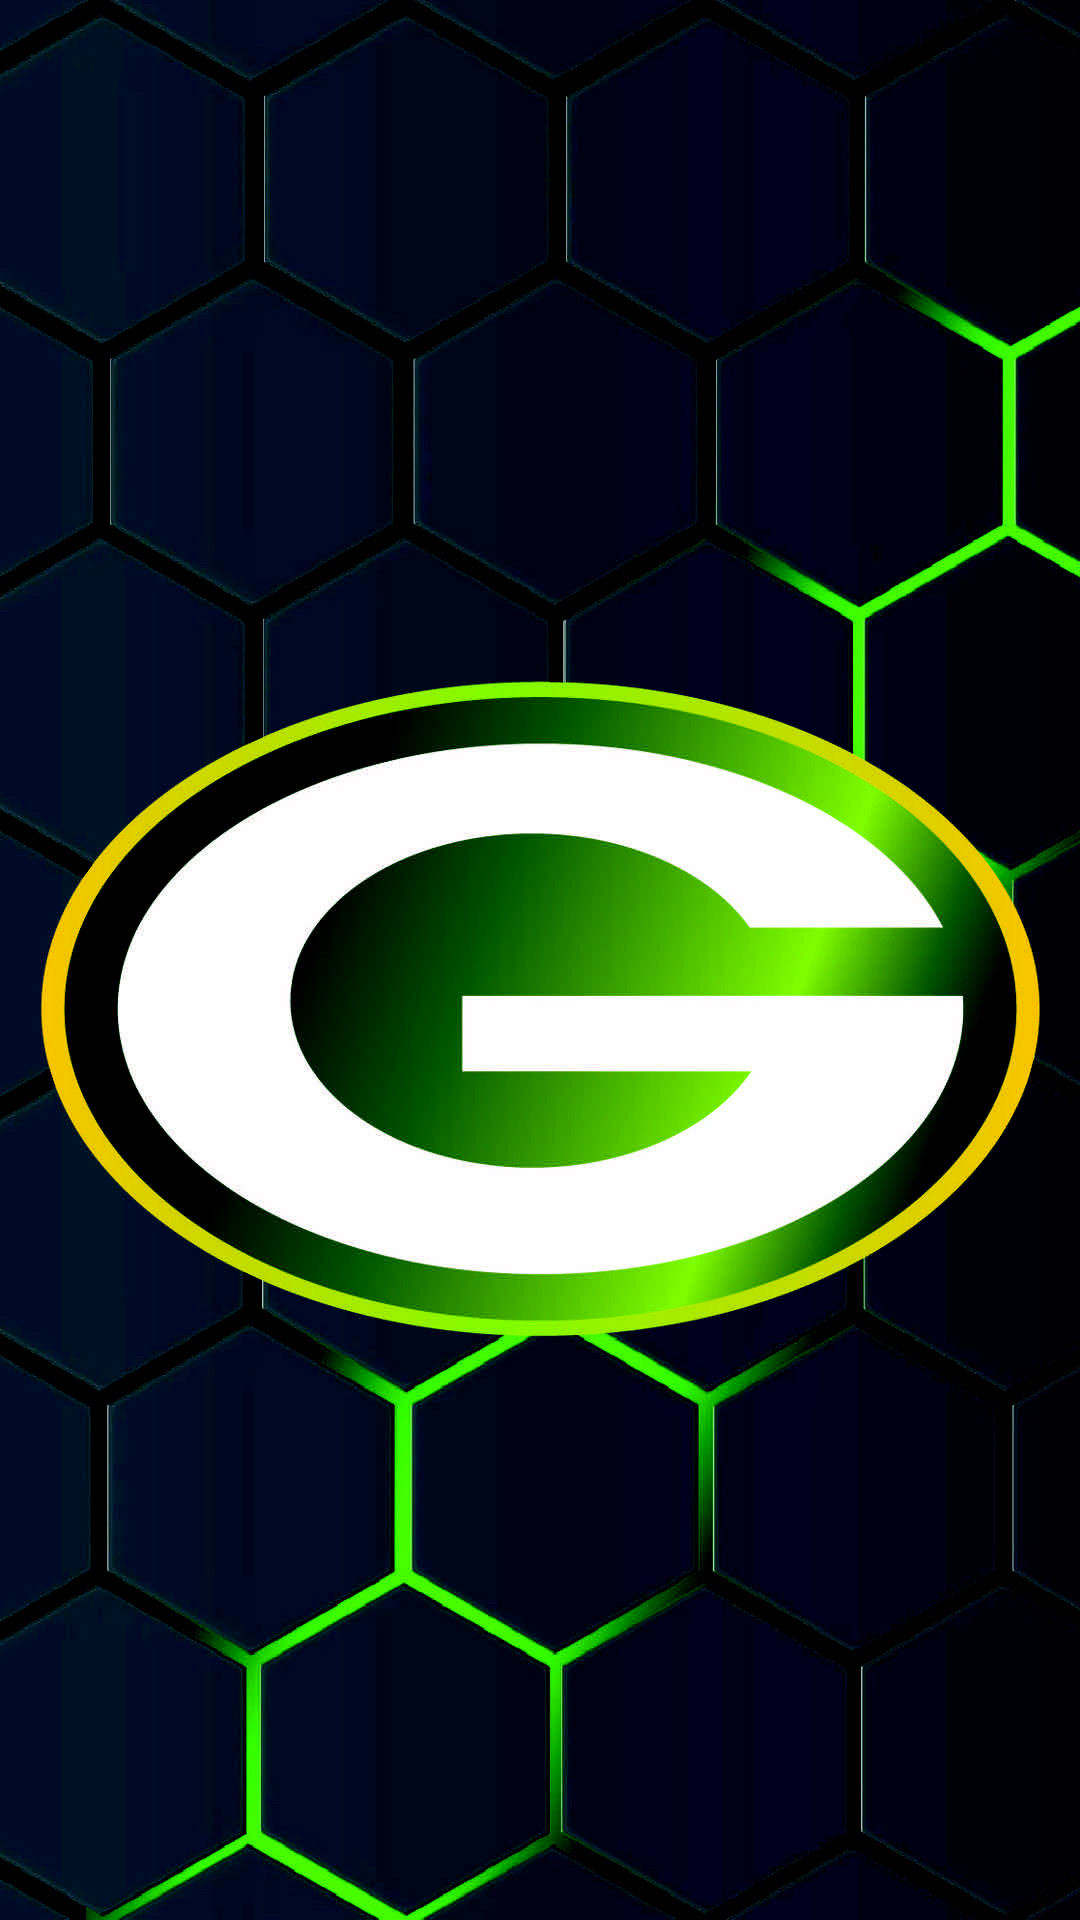 Download Green Bay Packers Wallpaper Iphone Hd Backgrounds Download Itl Cat